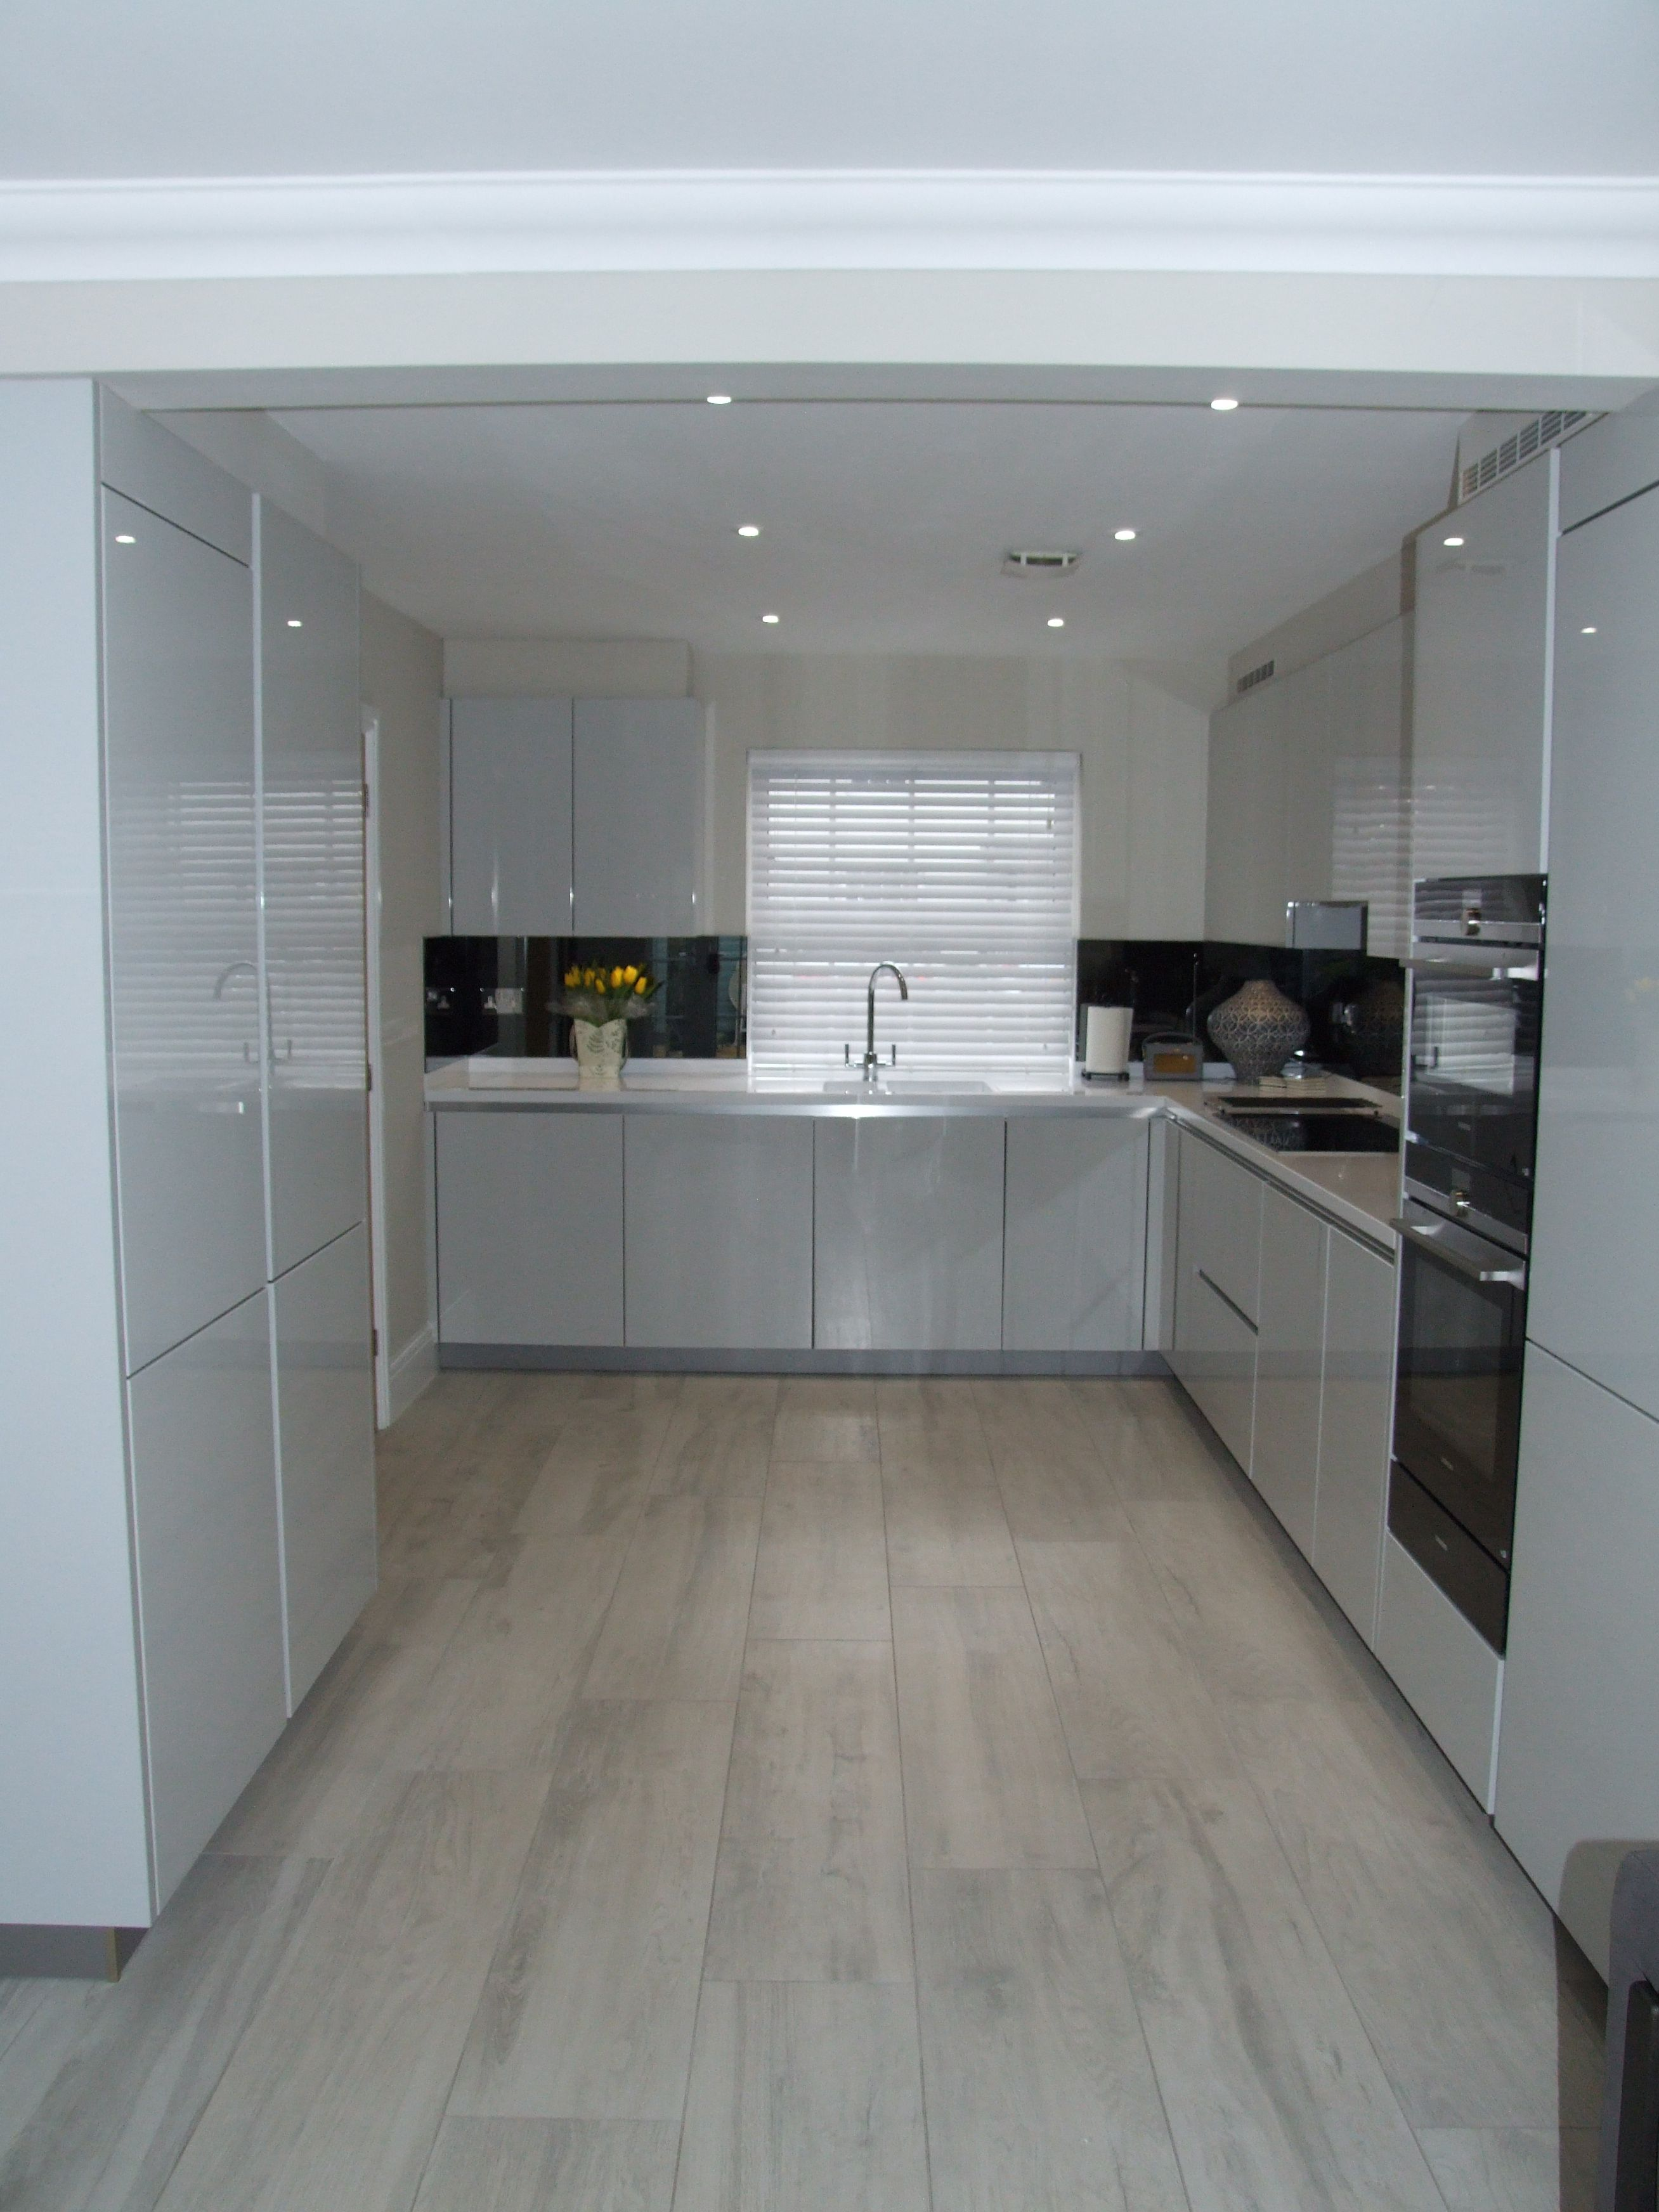 A beautifully bright and modern handleless kitchen in high